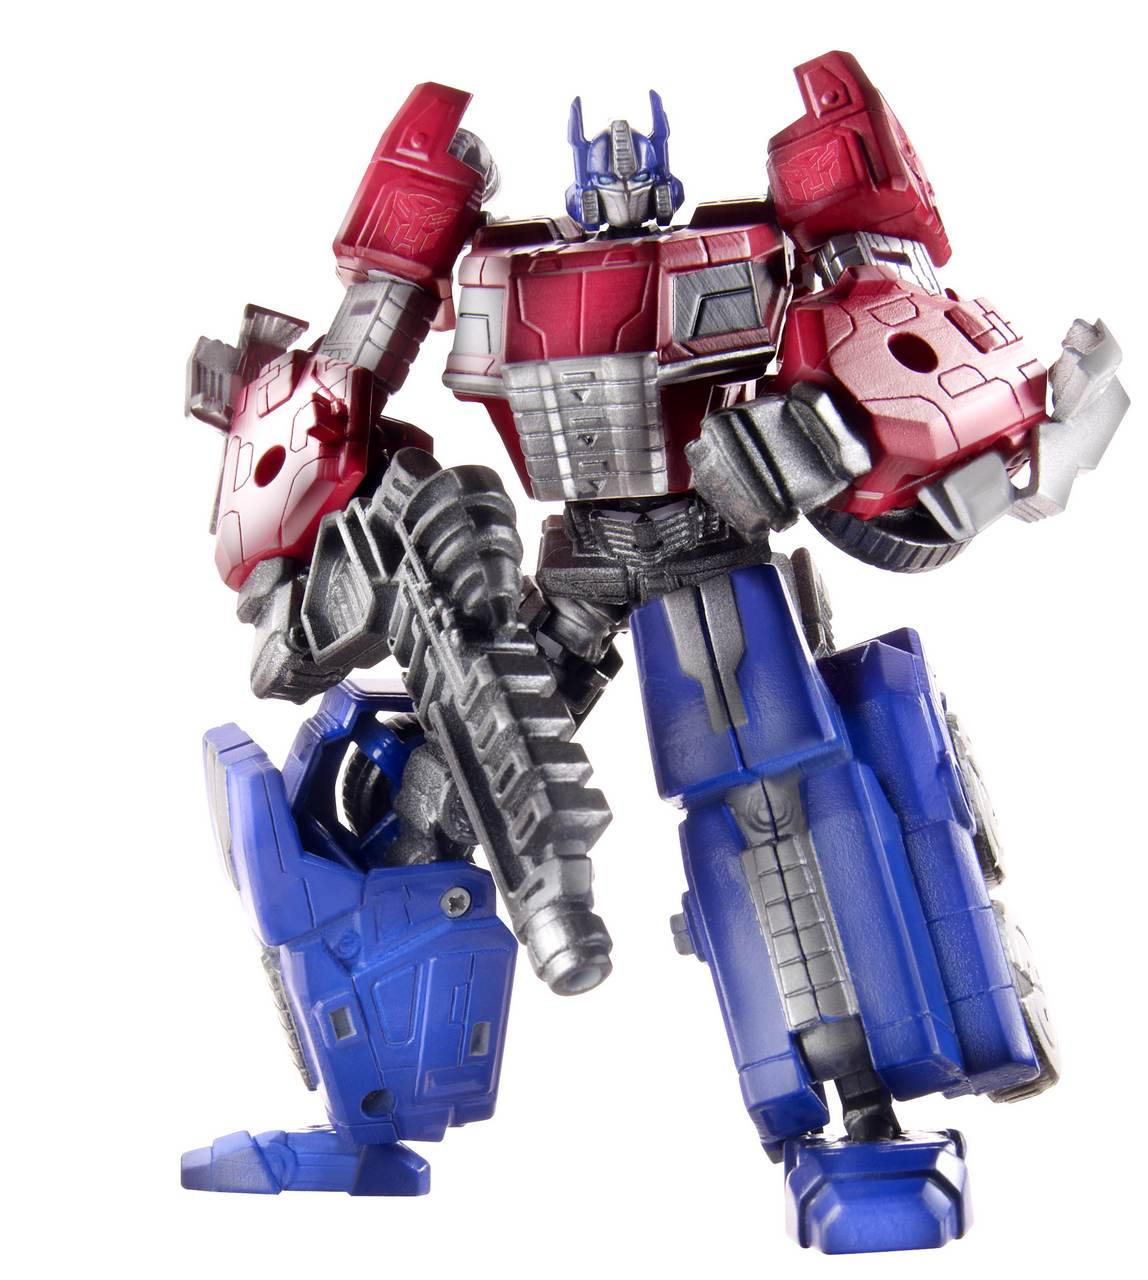 TF-Generations-Deluxe-Optimus-A0169